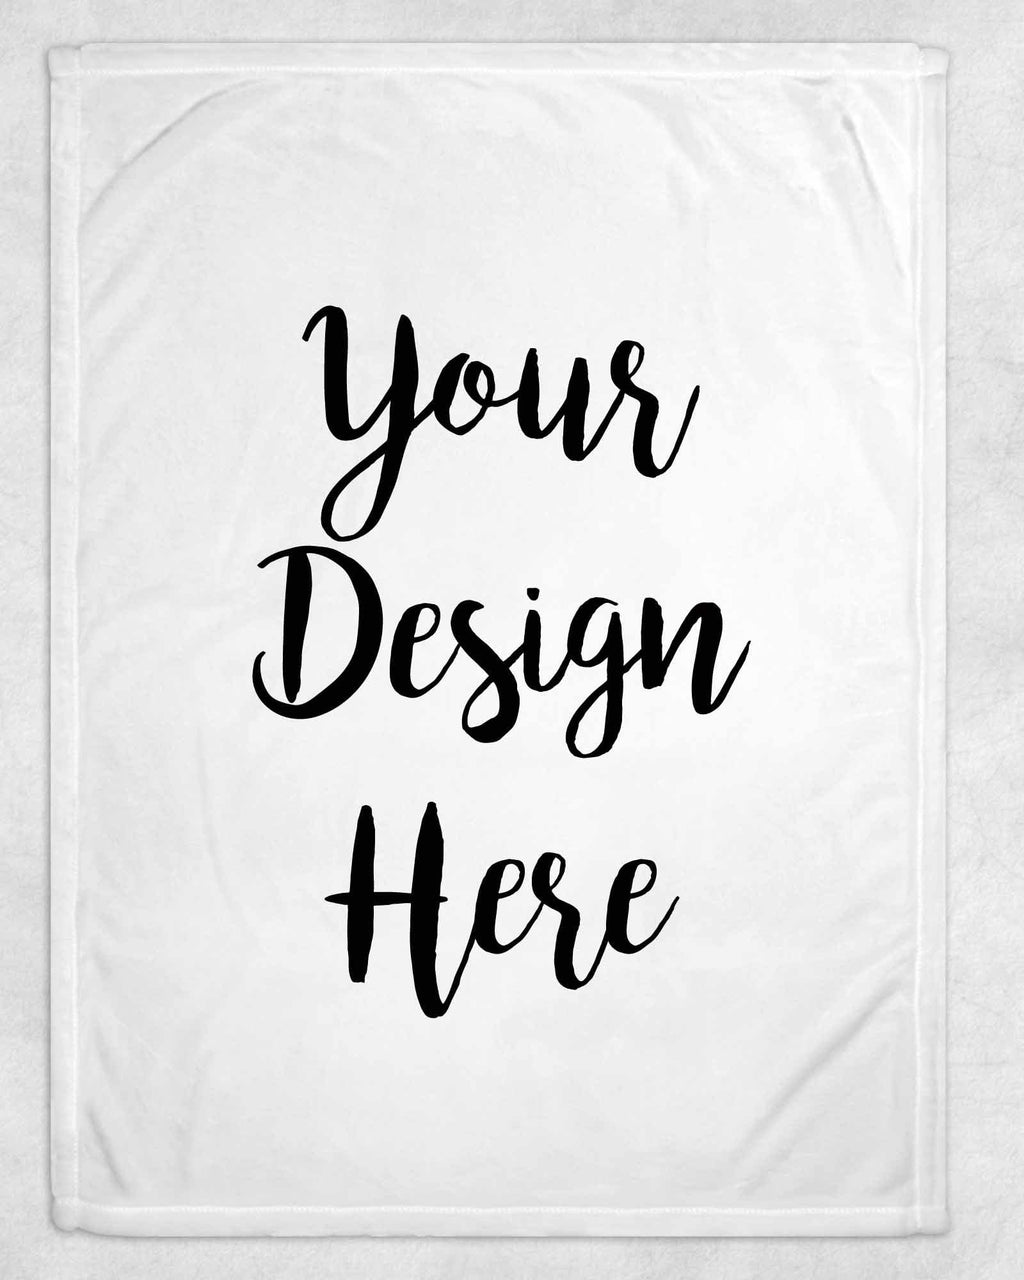 Design your own blanket - Potter's Printing